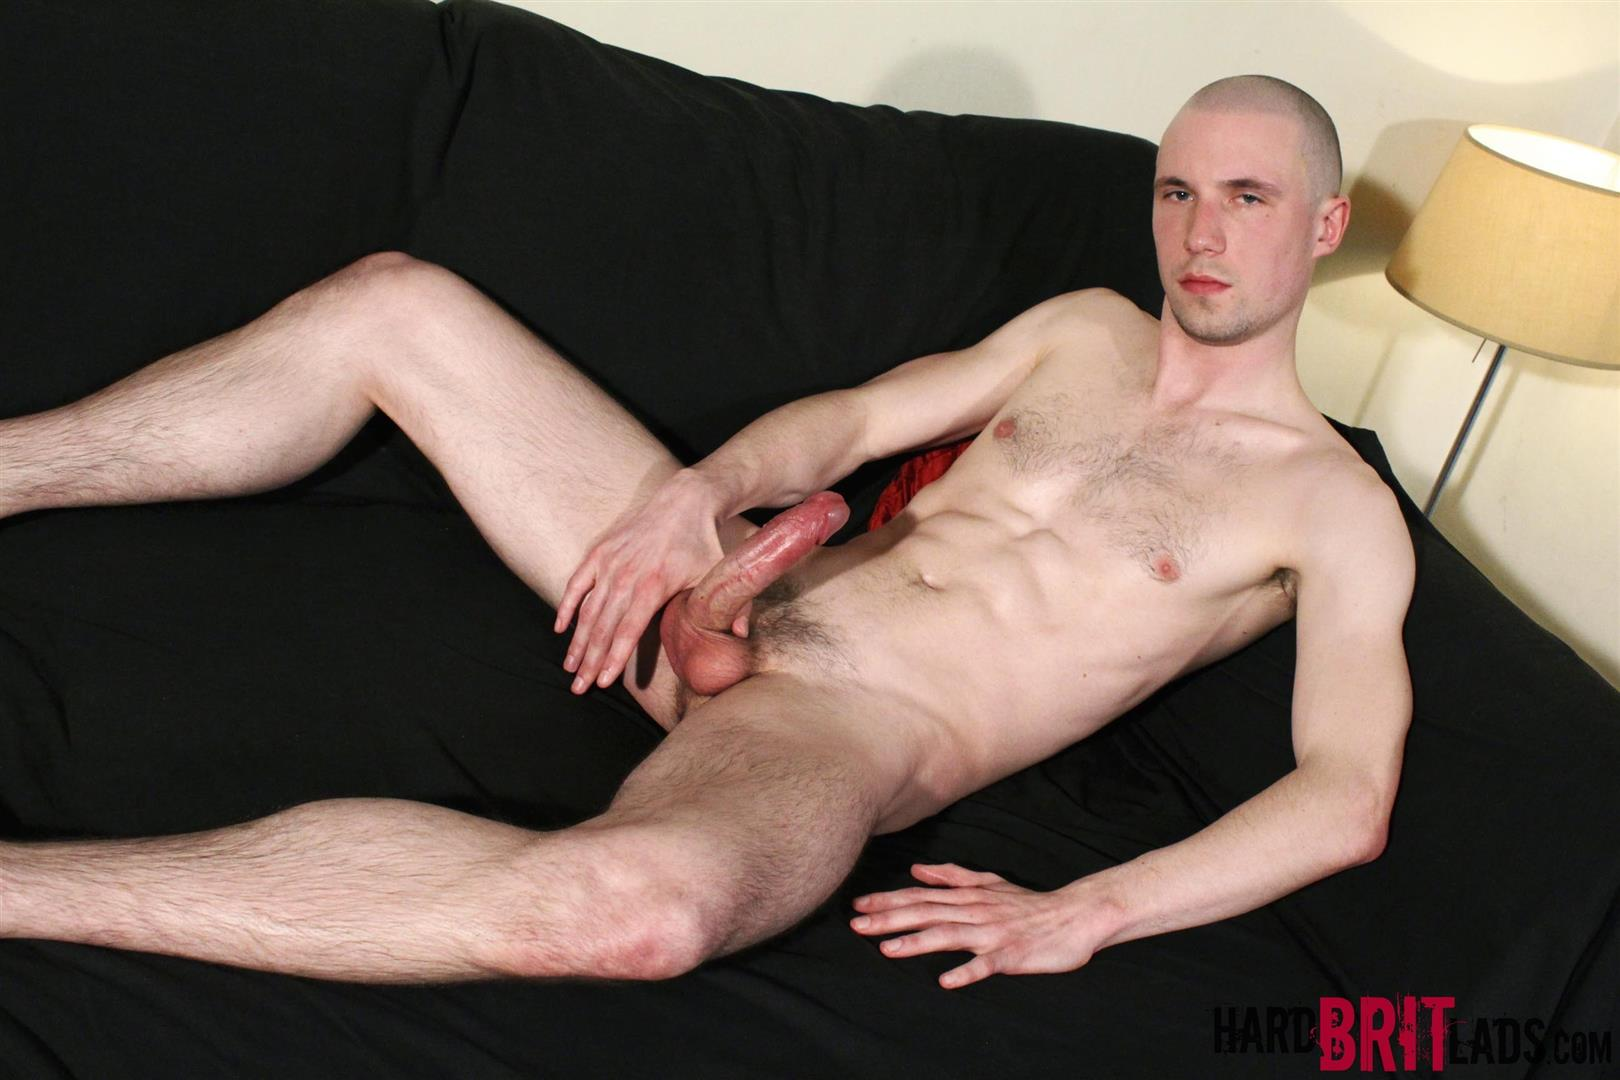 Hard-Brit-Lads-Jason-Domino-Naked-Skinhead-With-Big-Uncut-Cock-Jerk-Off-Amateur-Gay-Porn-08 British Skinhead Jerking Off His Big Uncut Cock